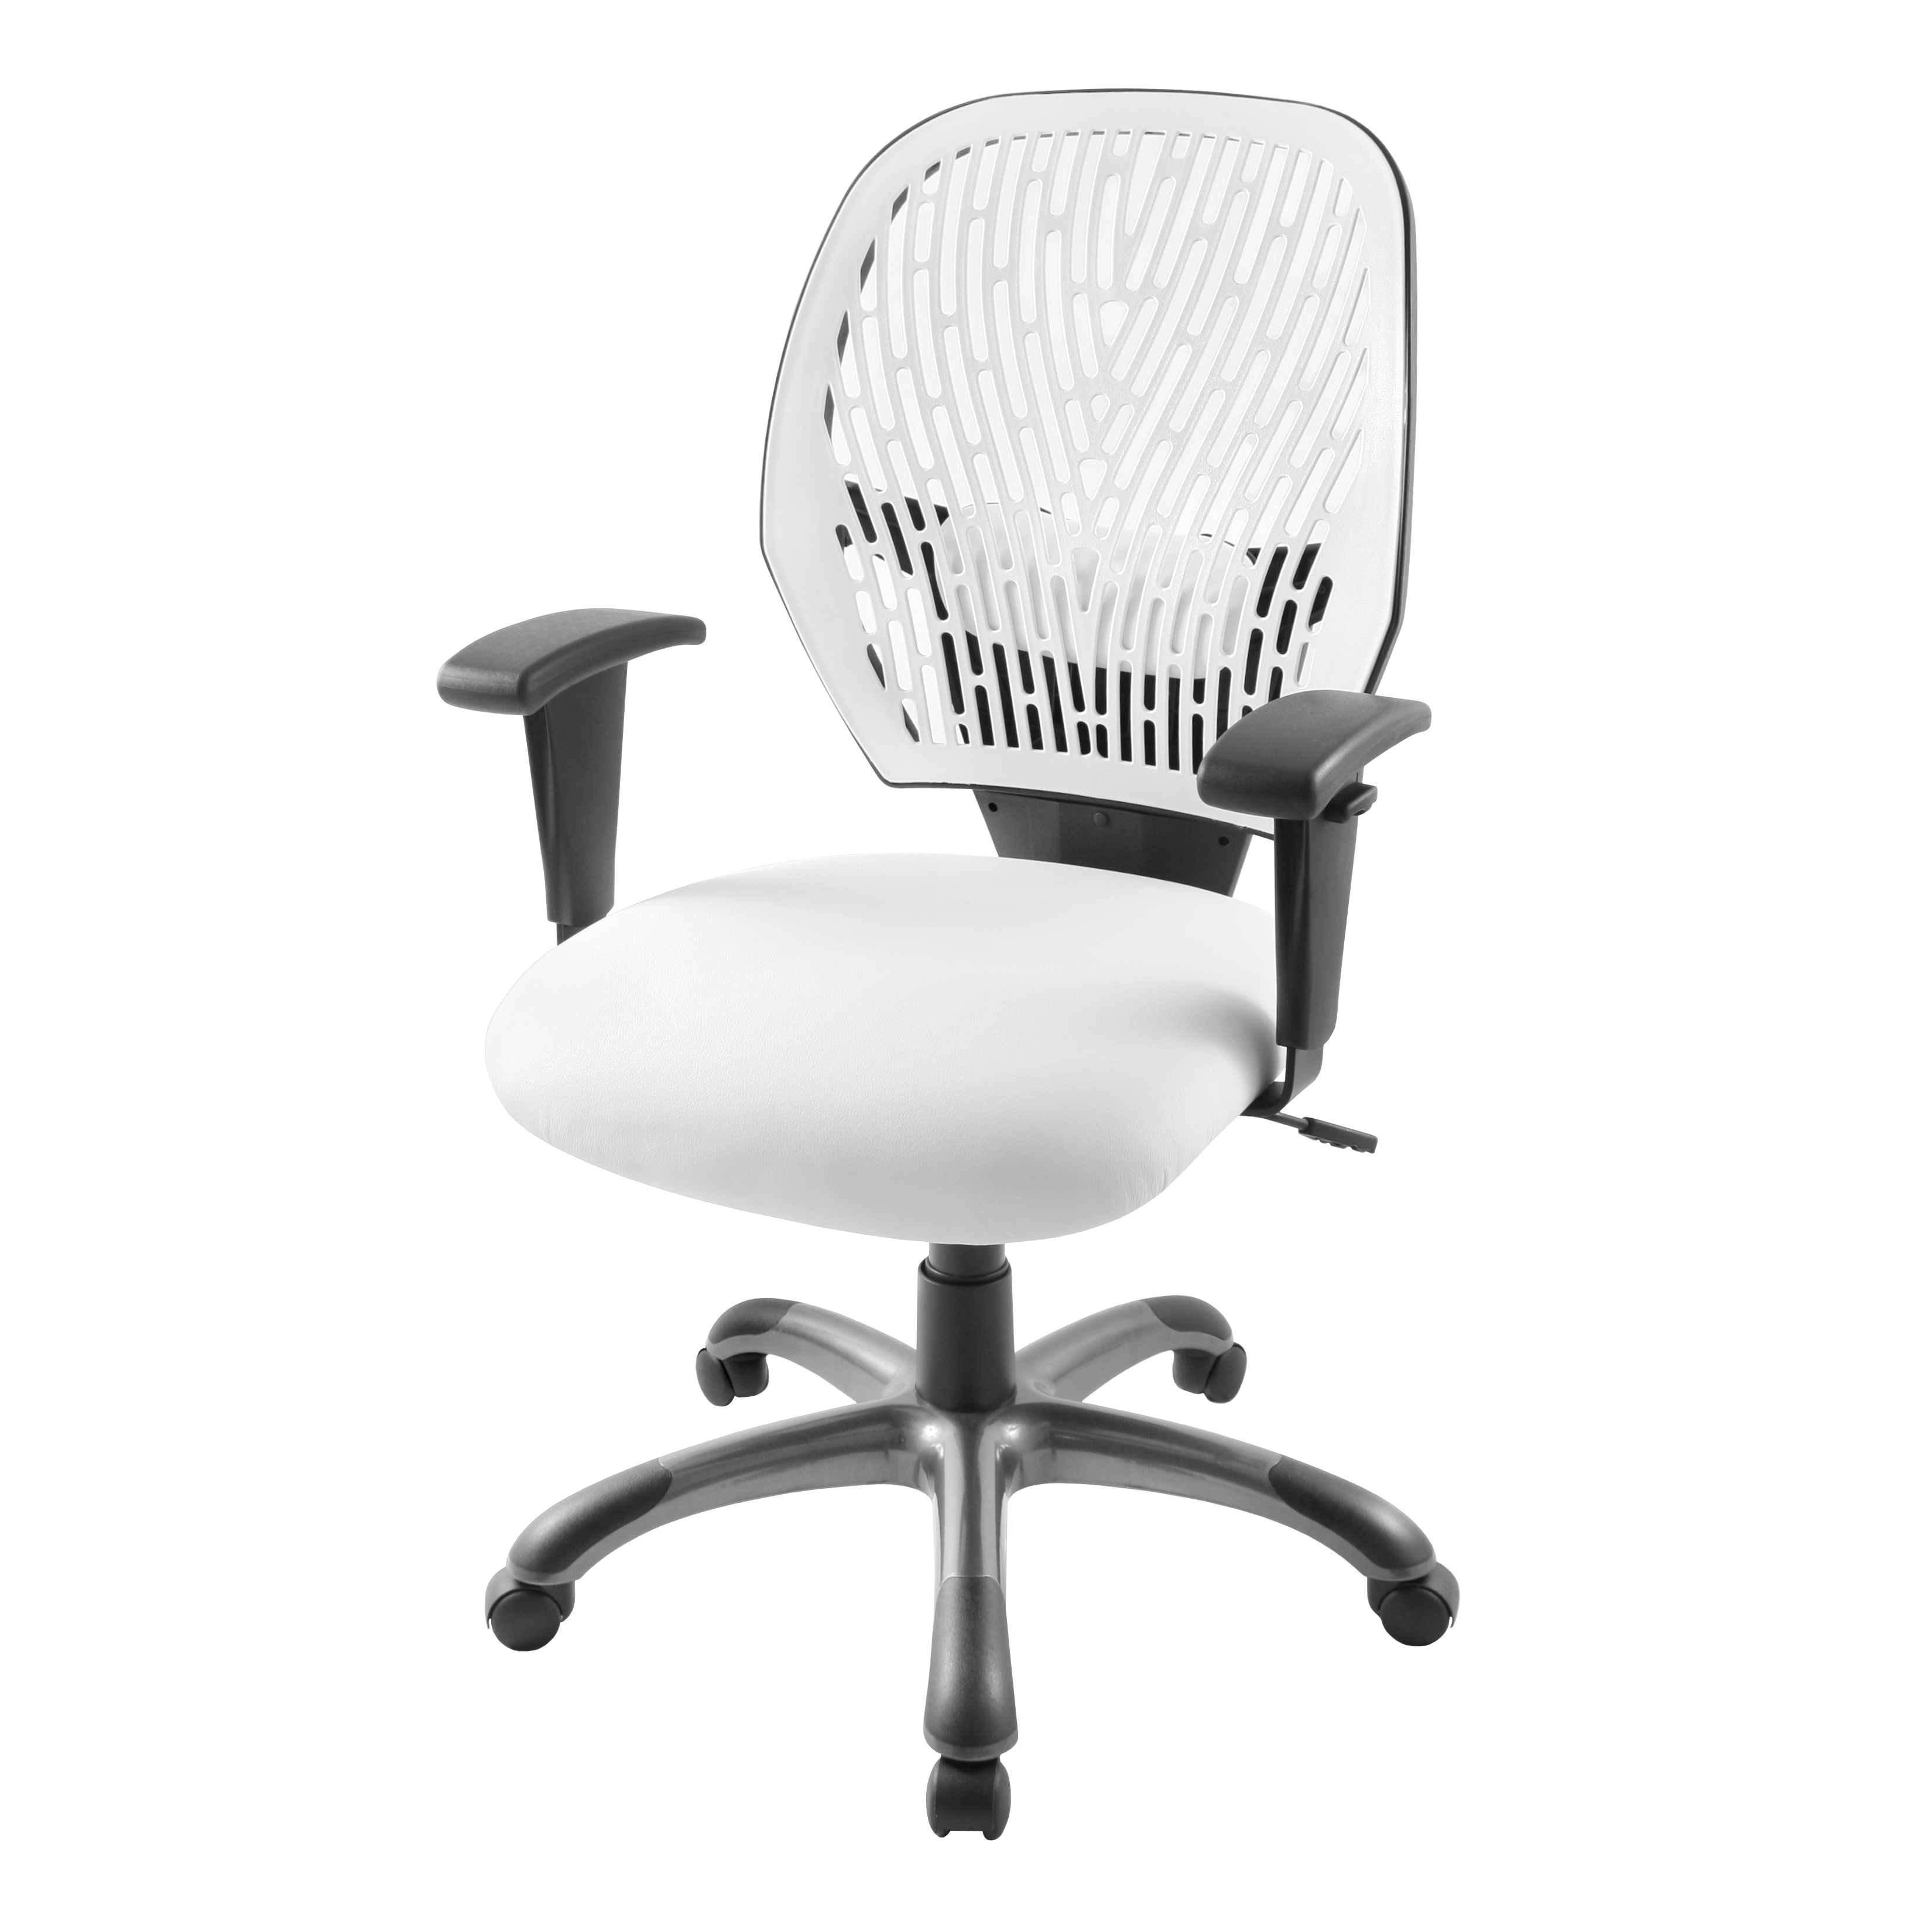 Latest Modern White Office Chair Gallery – Best Daily Home Design Ideas With Regard To Ergonomic Ultra Modern White Executive Office Chairs (View 7 of 20)